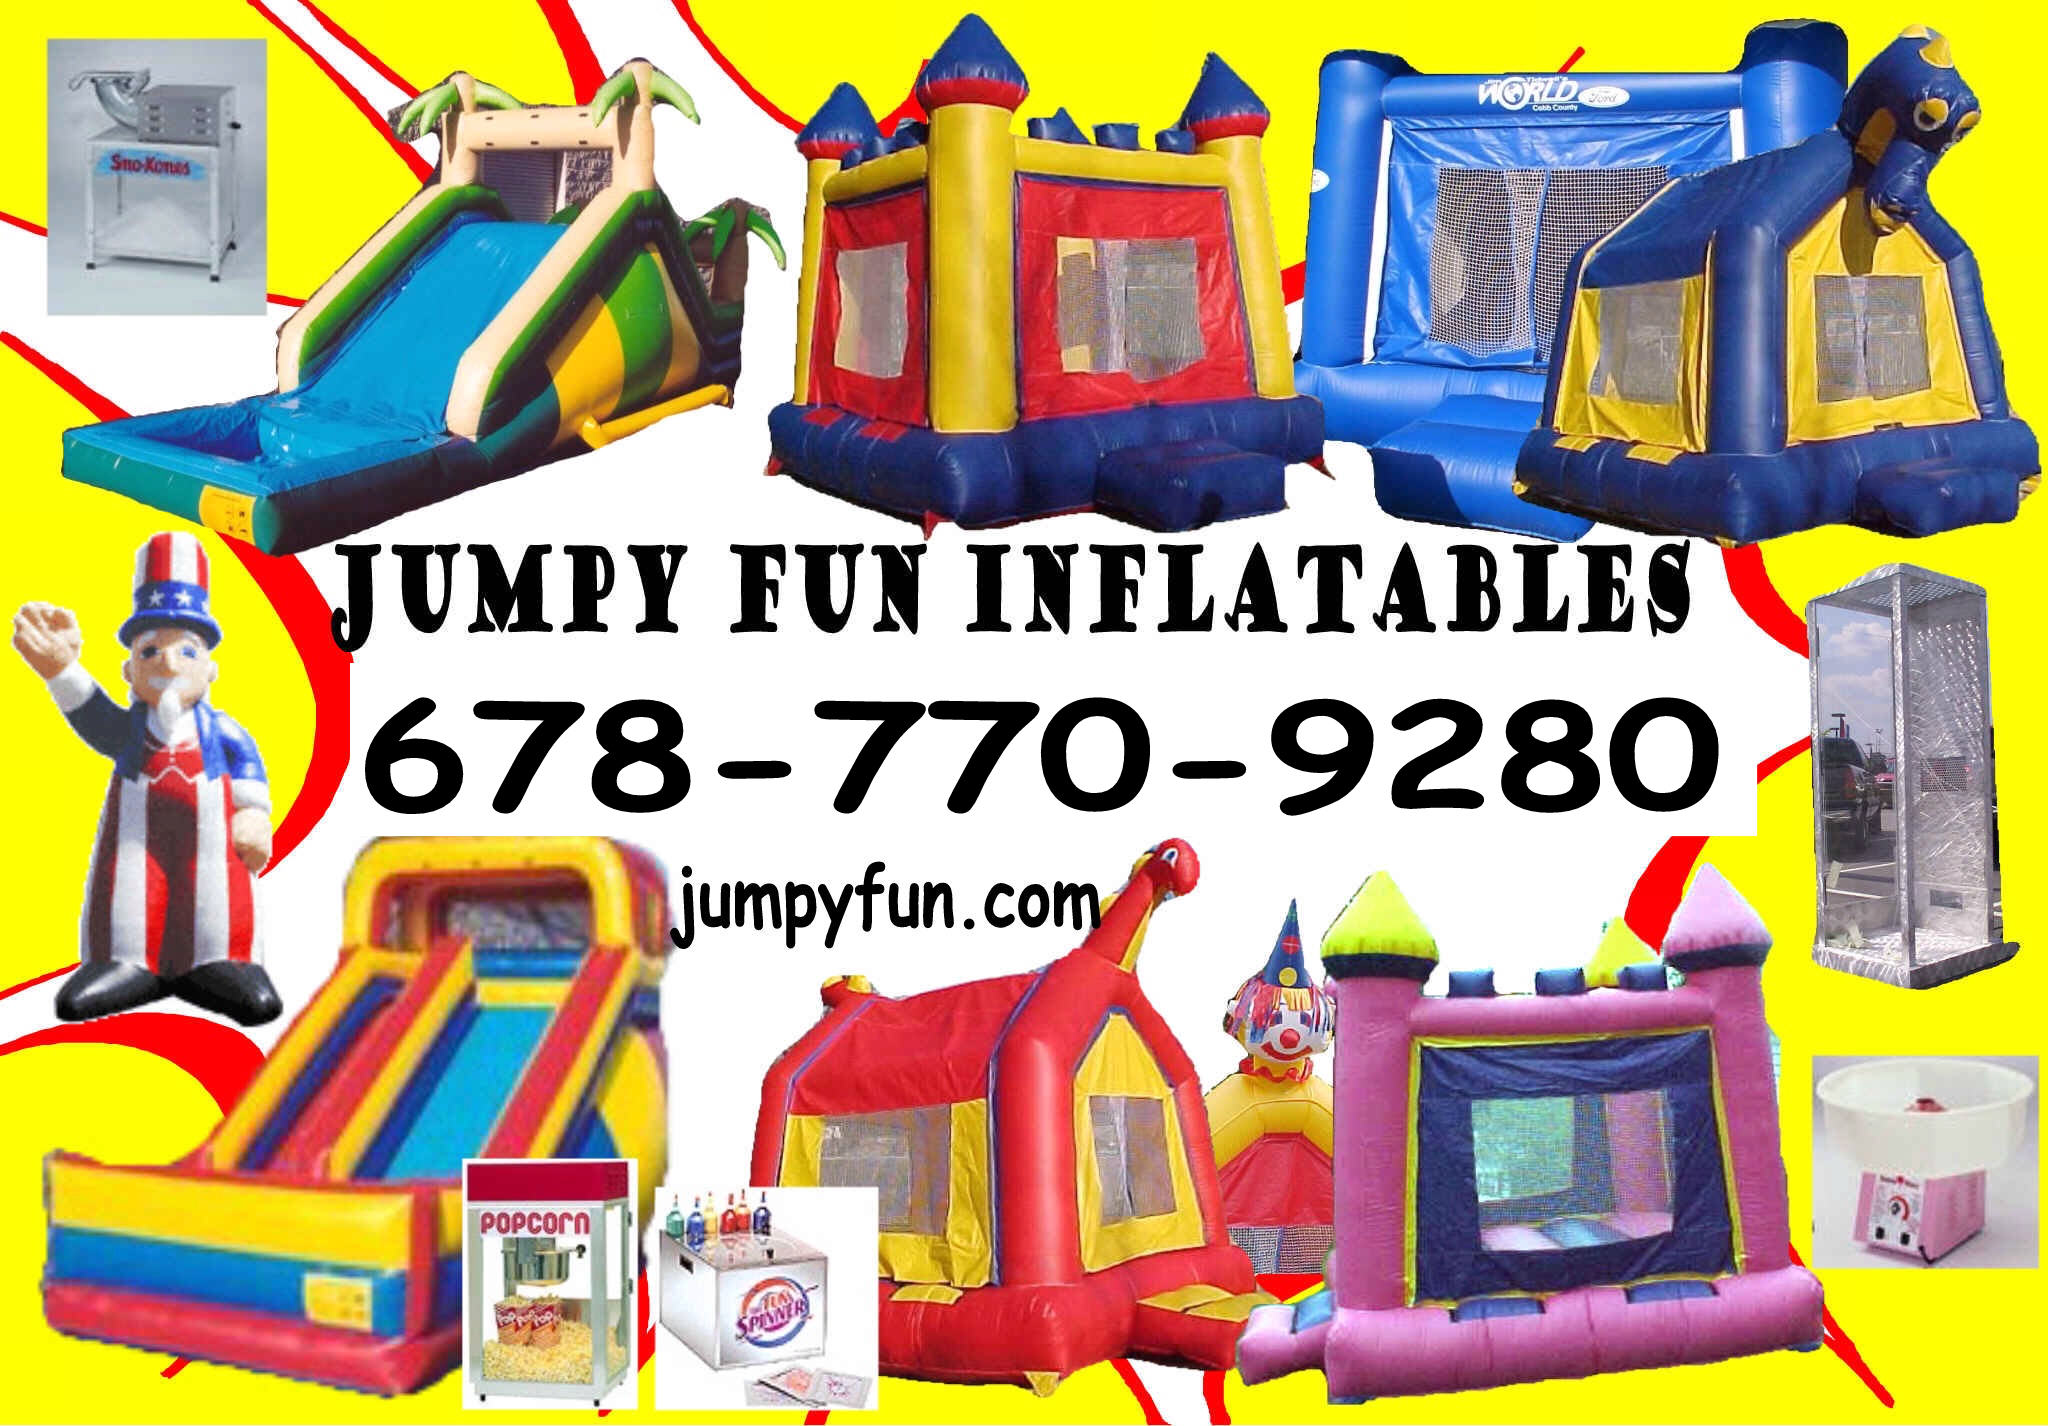 Jumpy Fun Inflatables